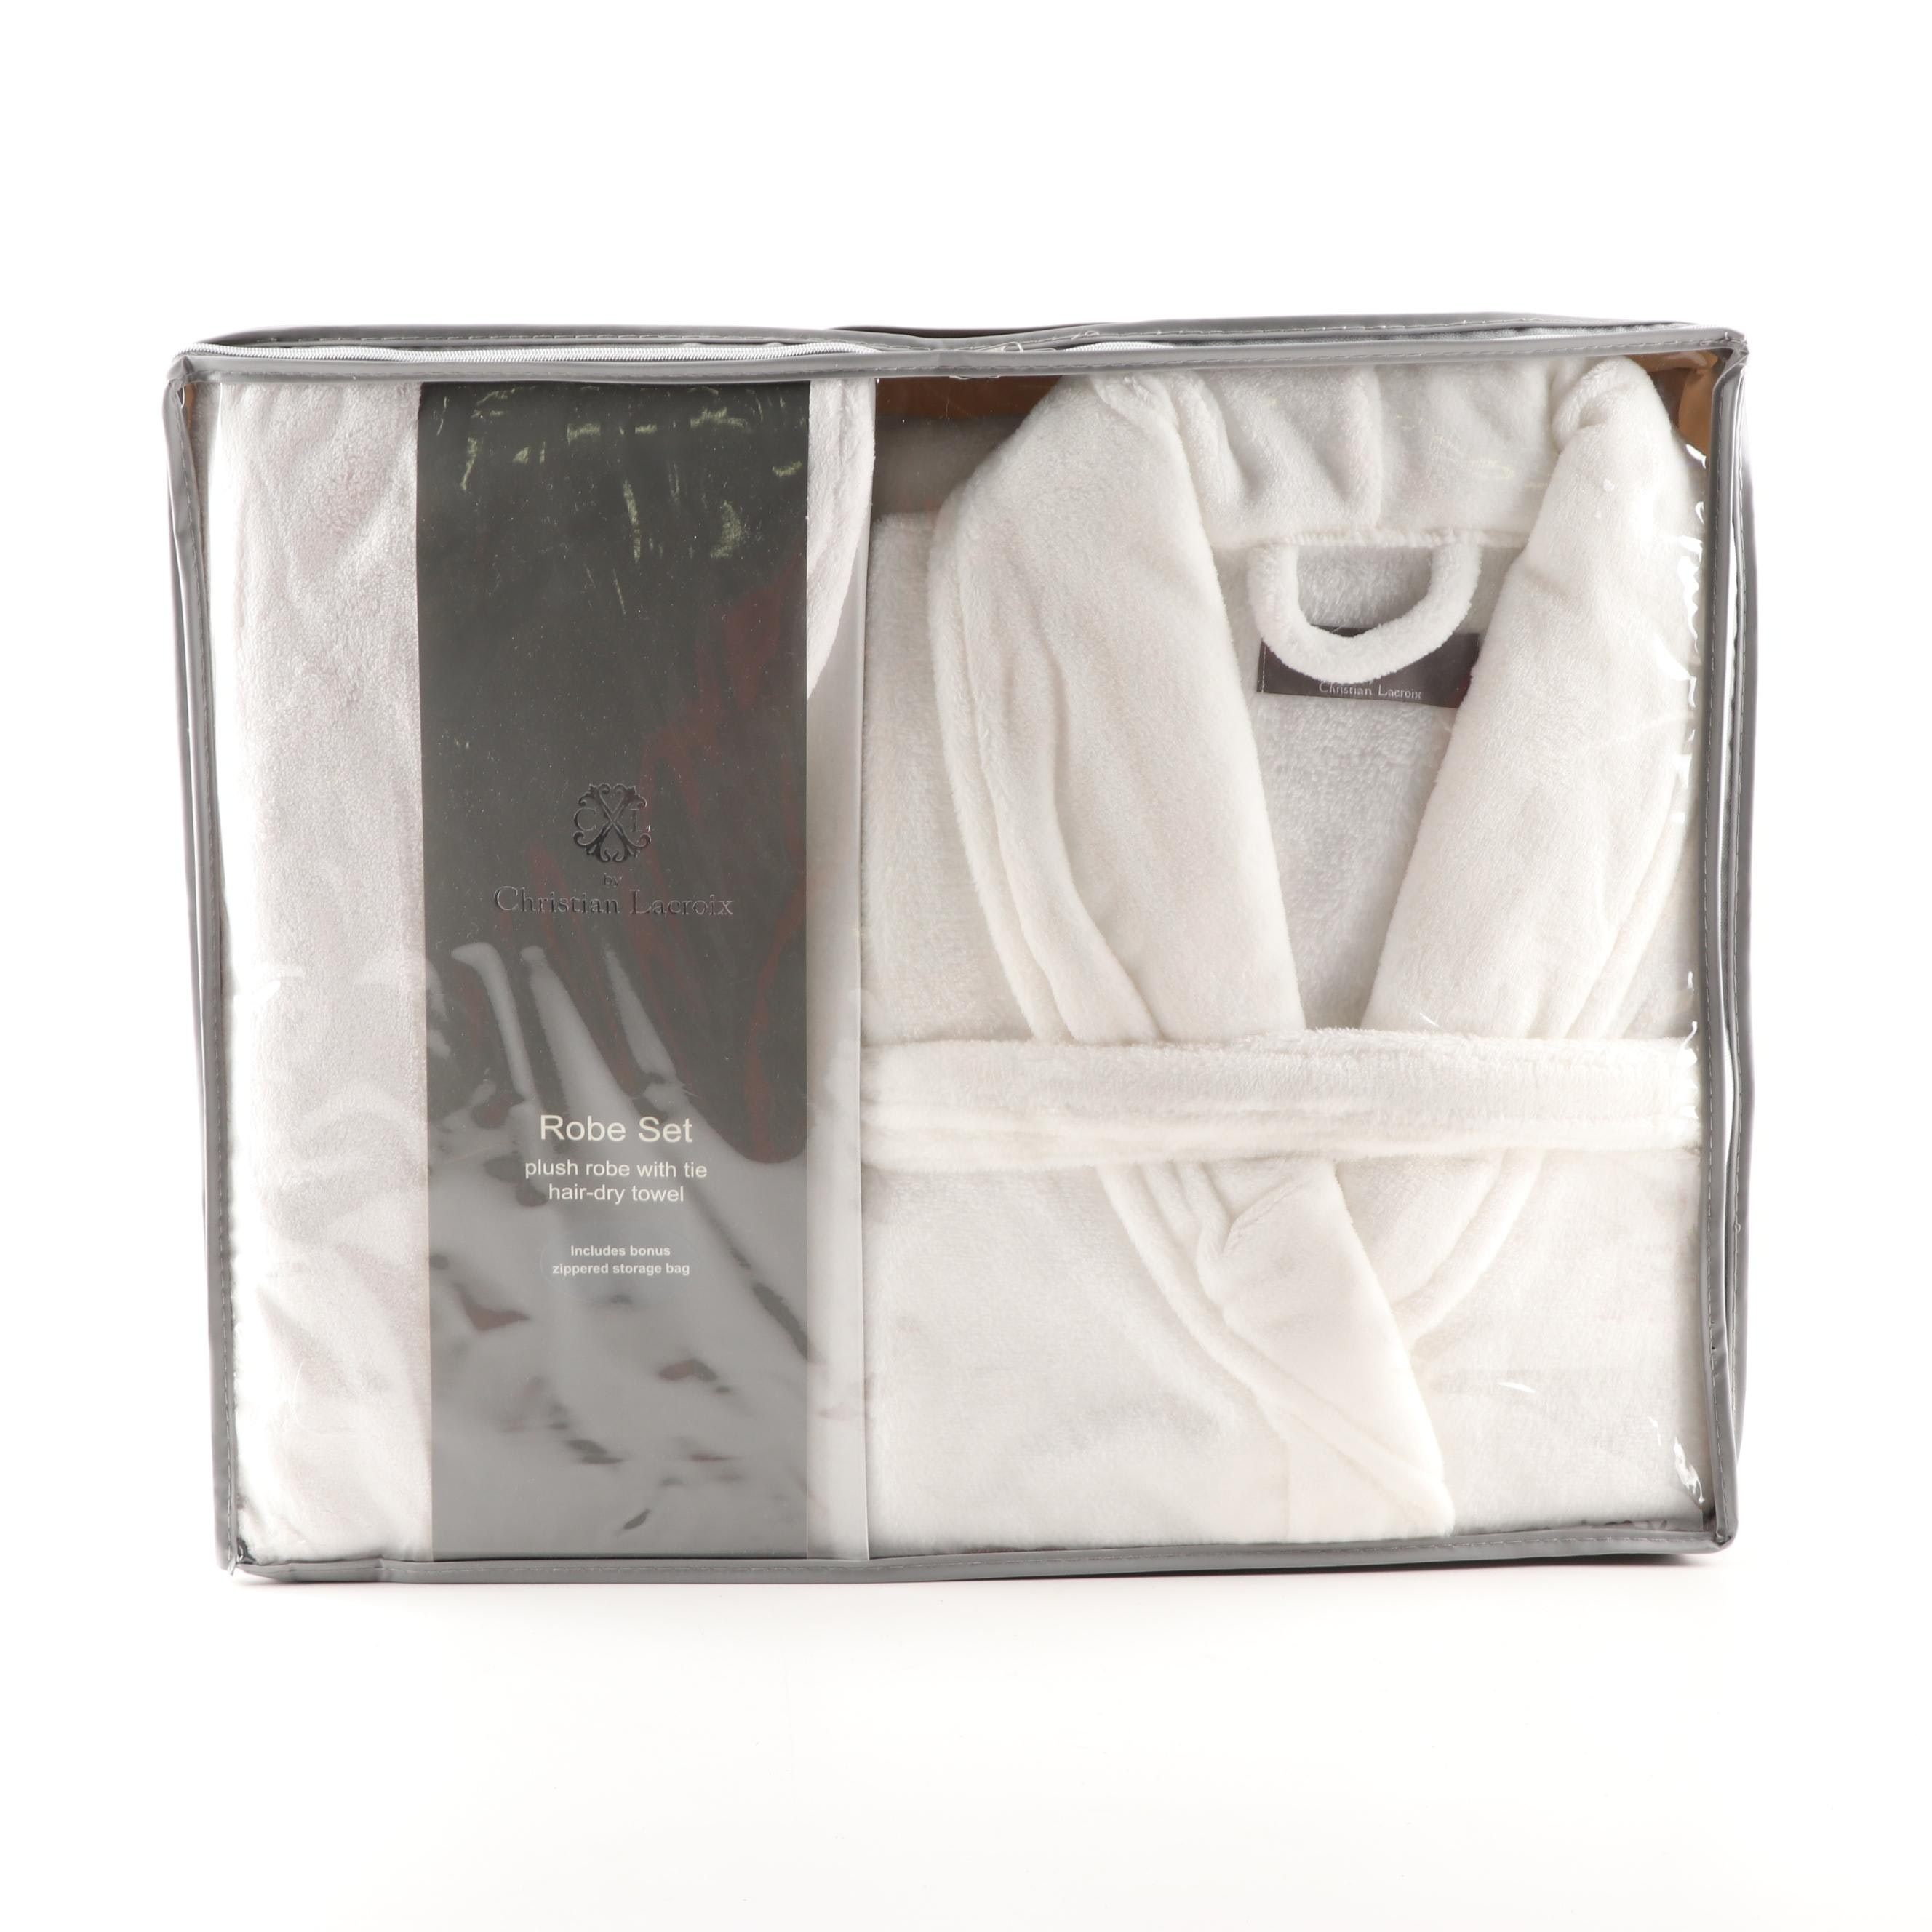 Christian Lacroix White Plush Robe with Tie and Hair-Dry Towel Set